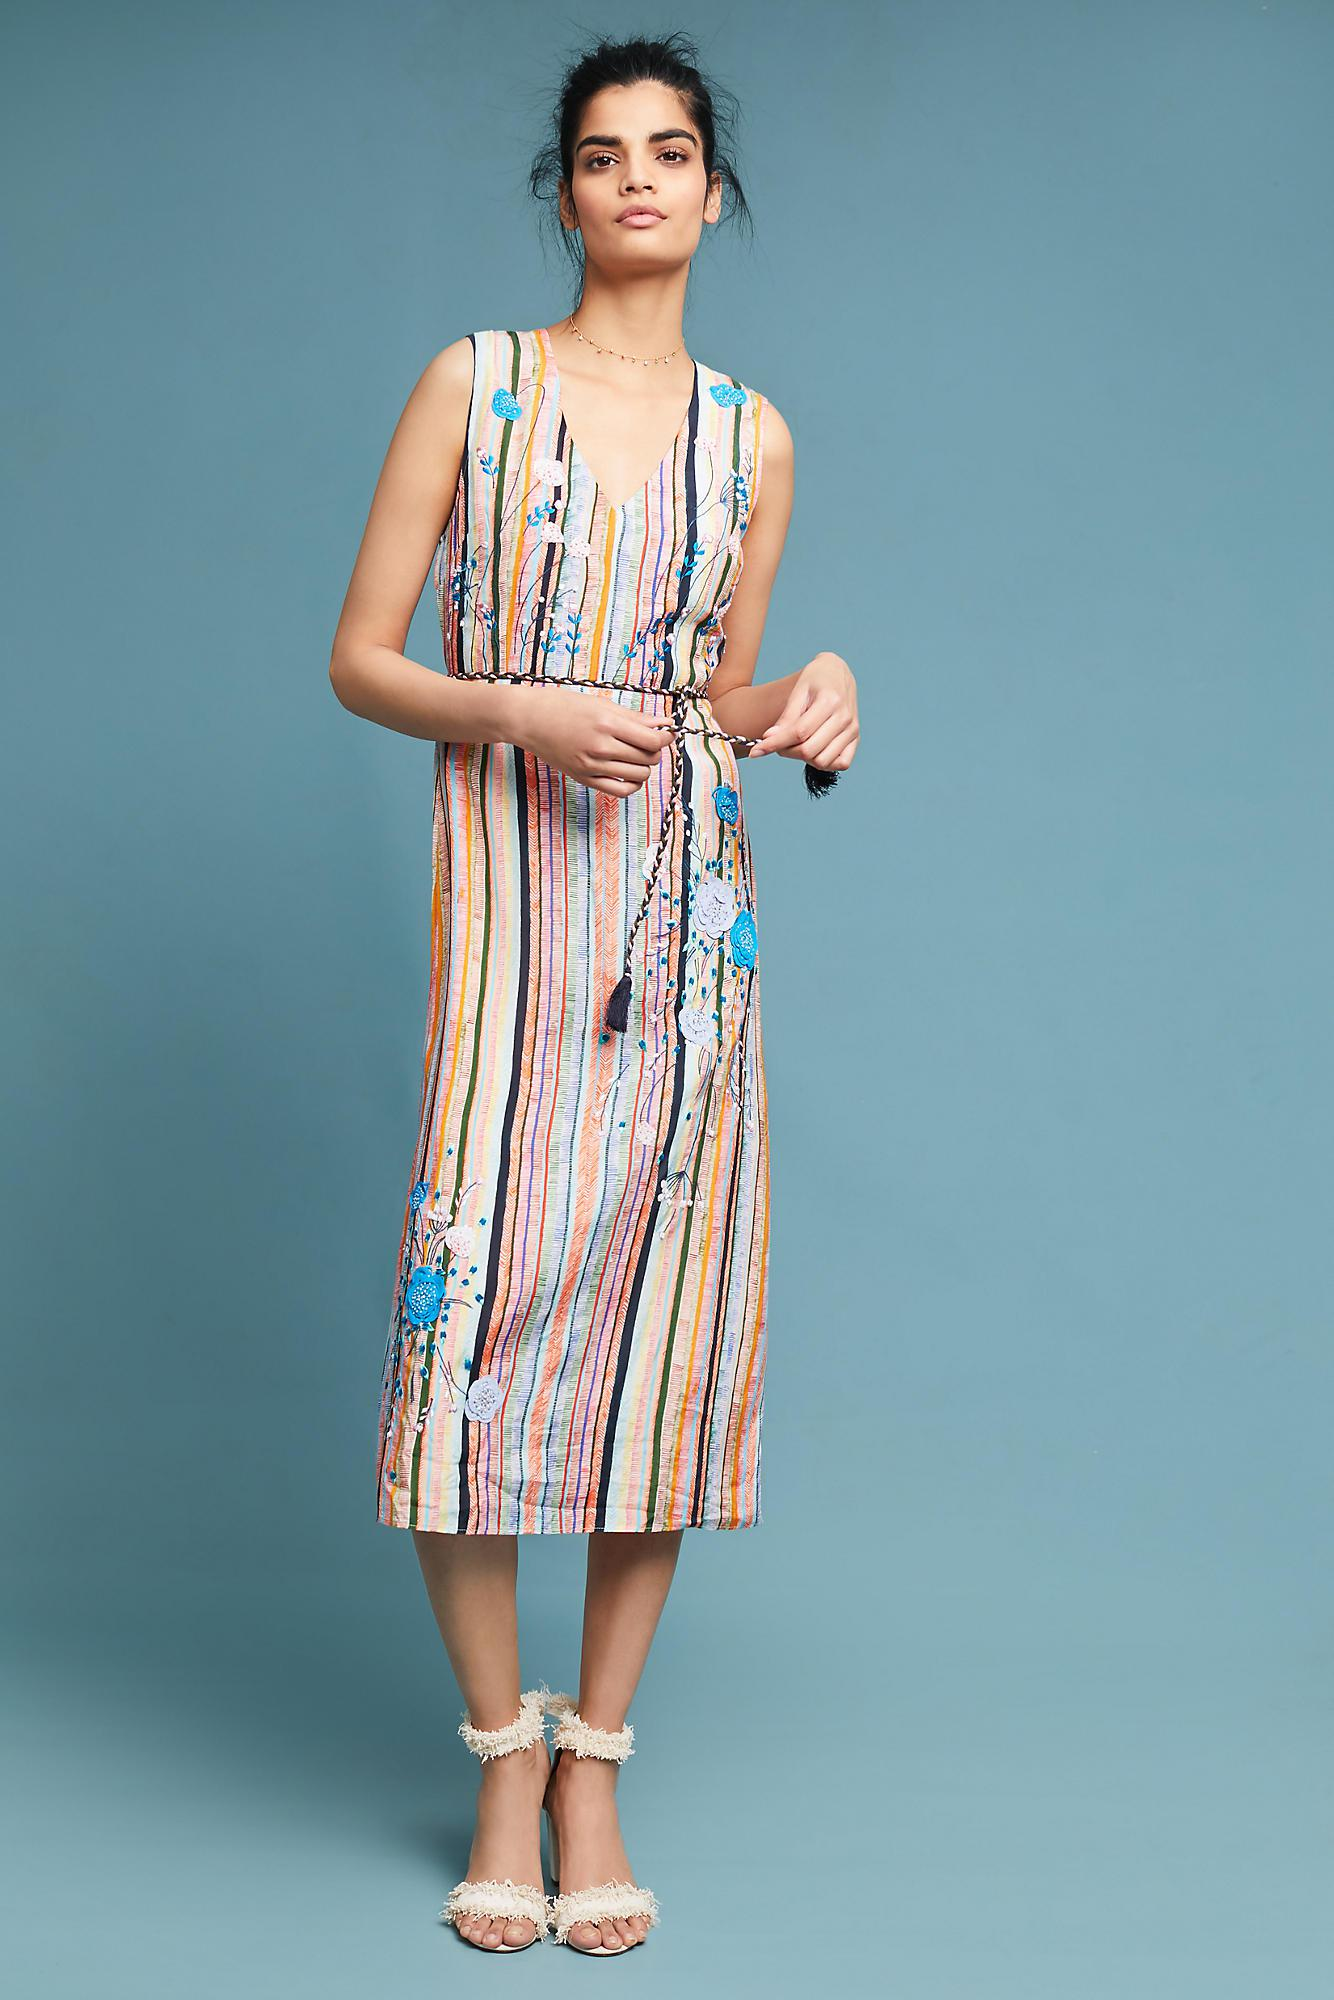 Lyst - Anthropologie Floral Embroidered Striped Midi Dress in Blue